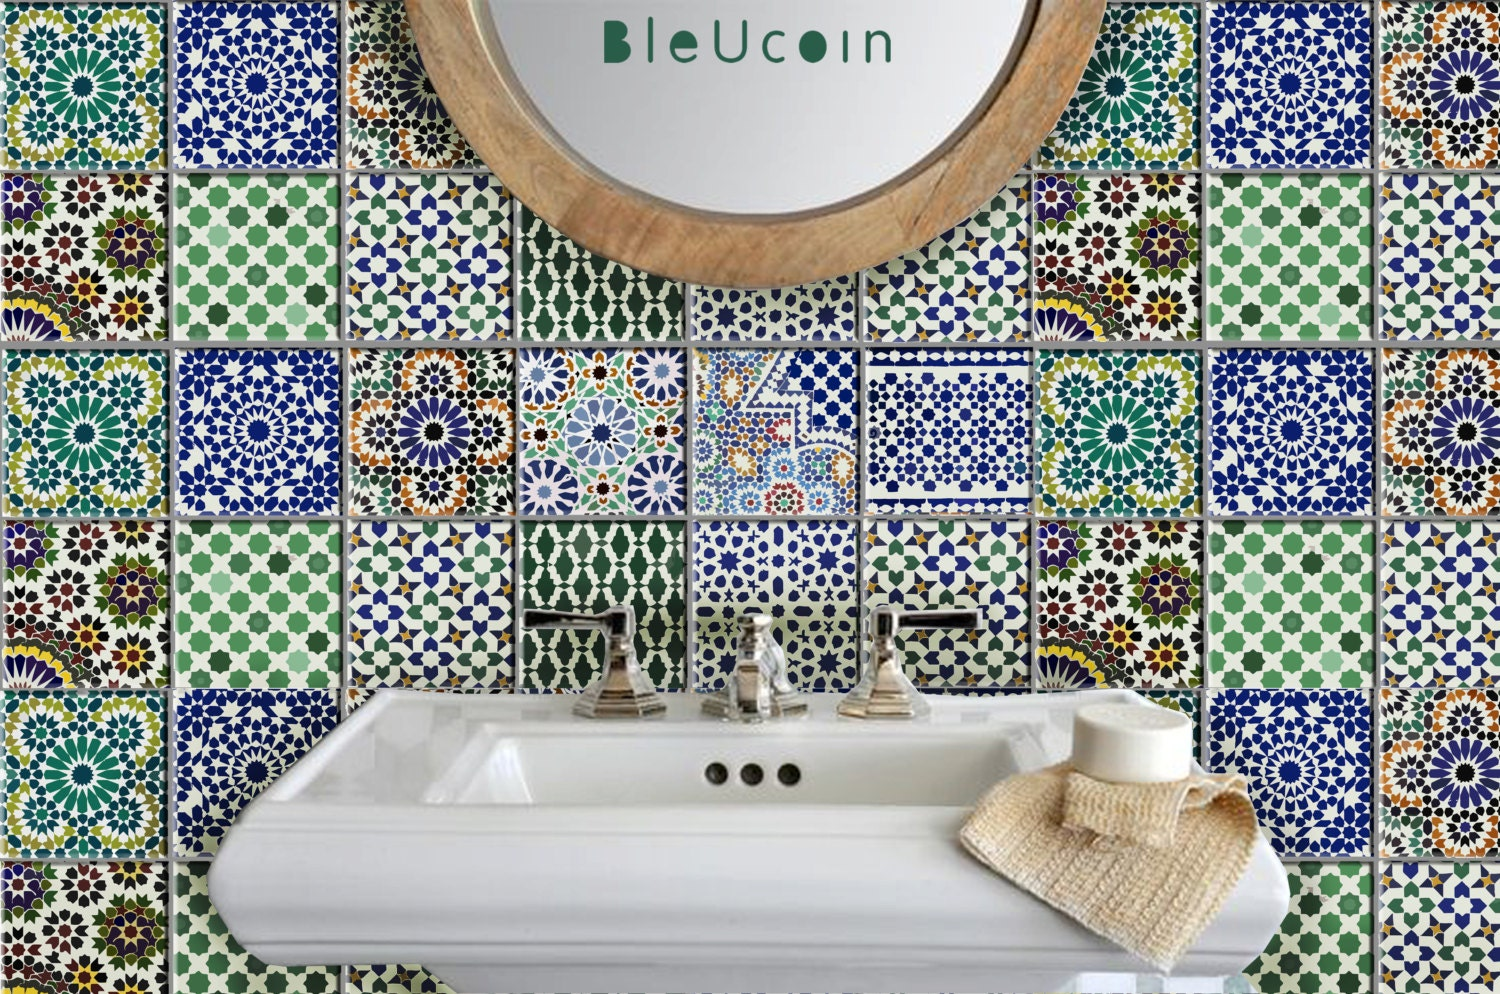 Moroccan tile wall floor decal kitchen bathroom indoor for Bathroom tile stickers